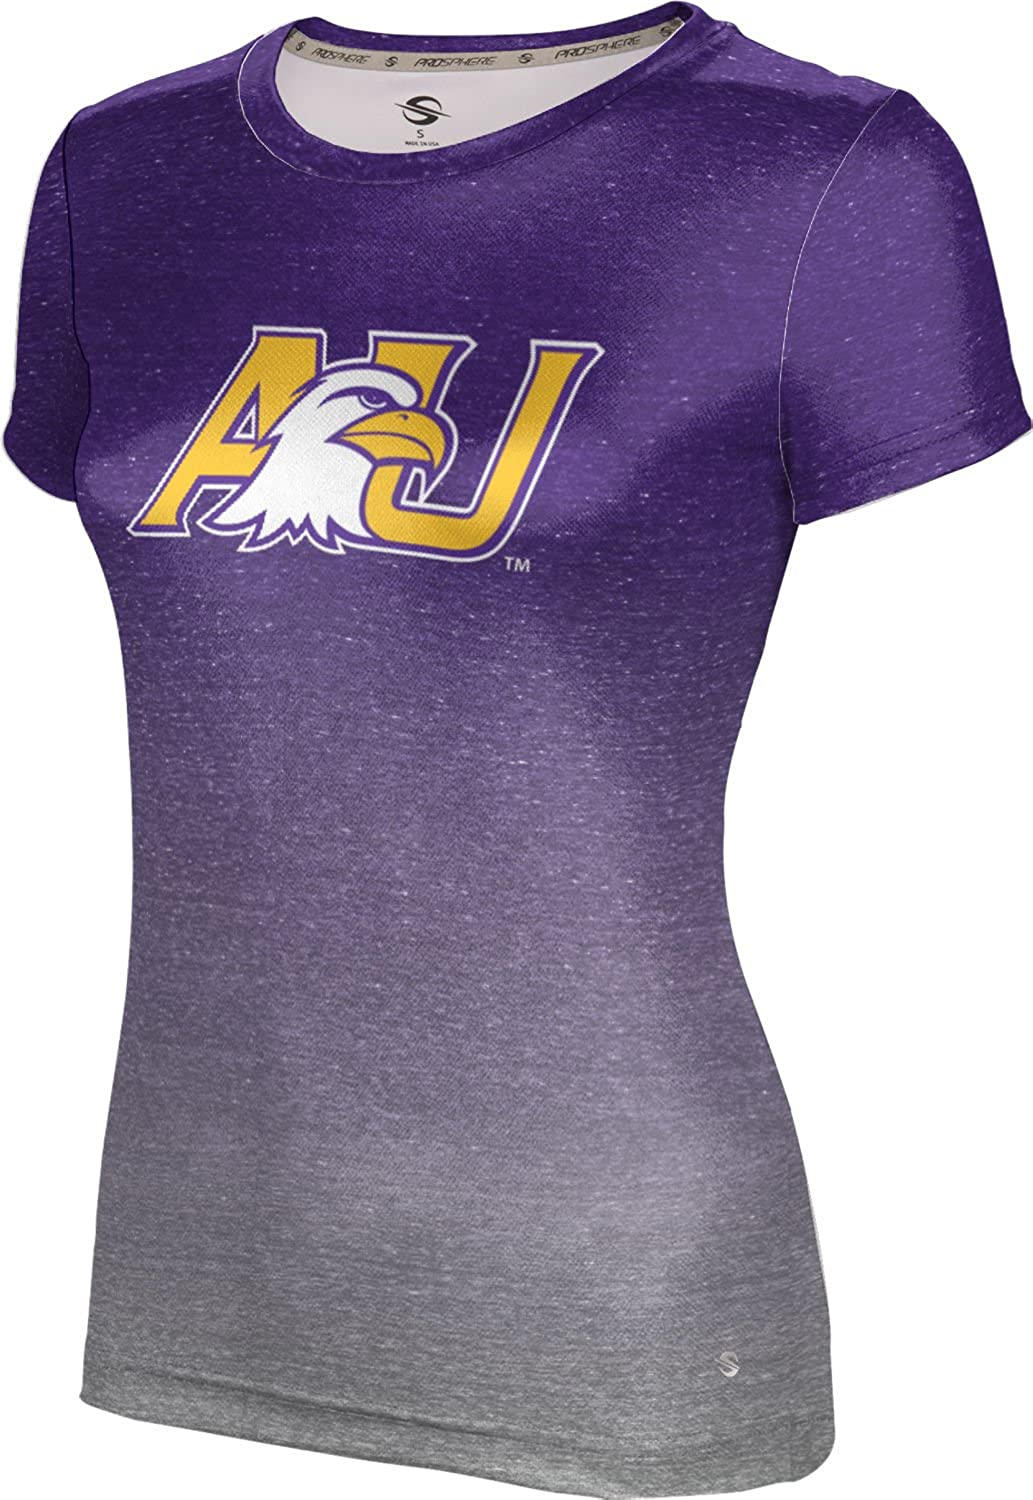 ProSphere Ashland University Women's Ombre Performance Opening large release sale List price T-Shirt